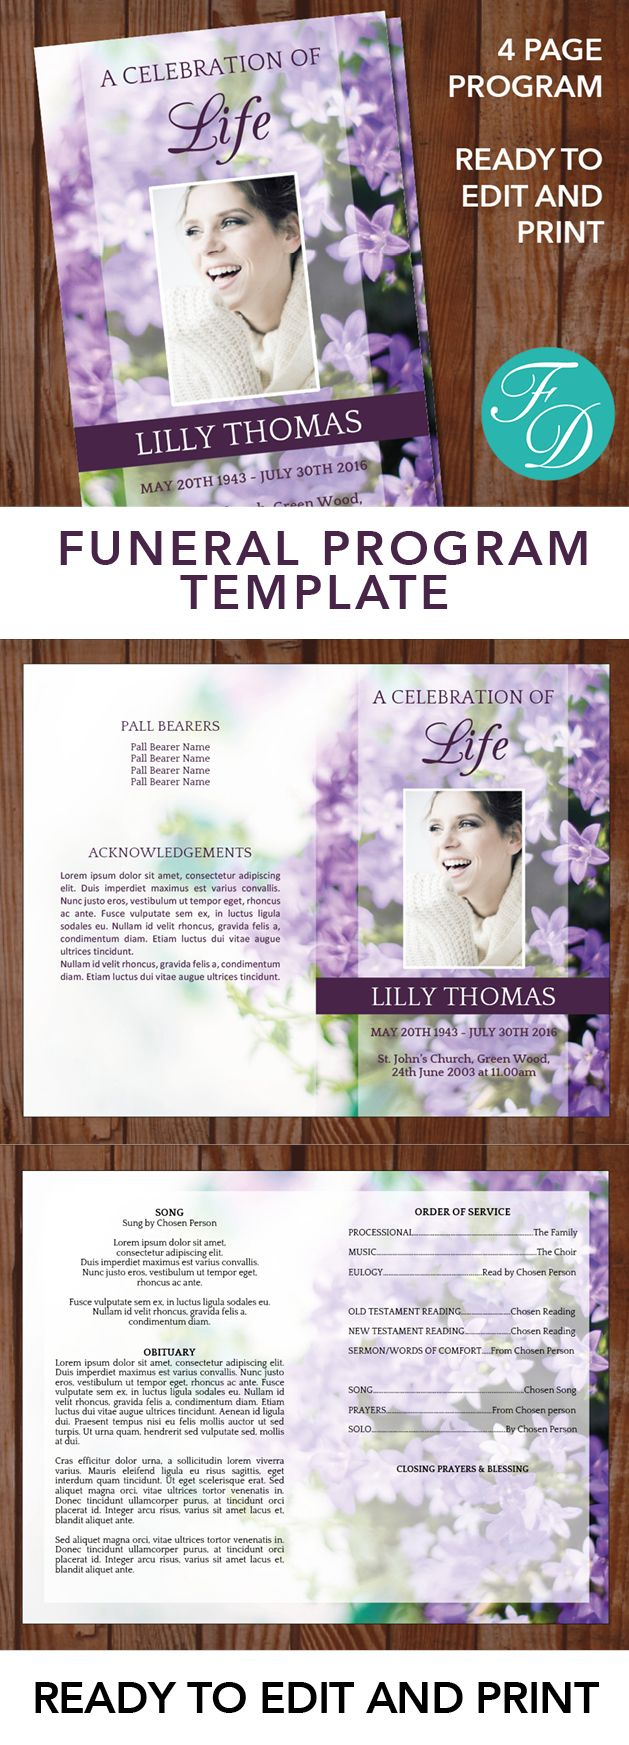 Purple Floral Printable Funeral program ready to edit & print. Simply purchase your funeral templates, download, edit with Microsoft Word and print. #obituarytemplate #memorialprogram #funeralprograms #funeraltemplate #printableprogram #celebrationoflife #funeralprogamtemplates